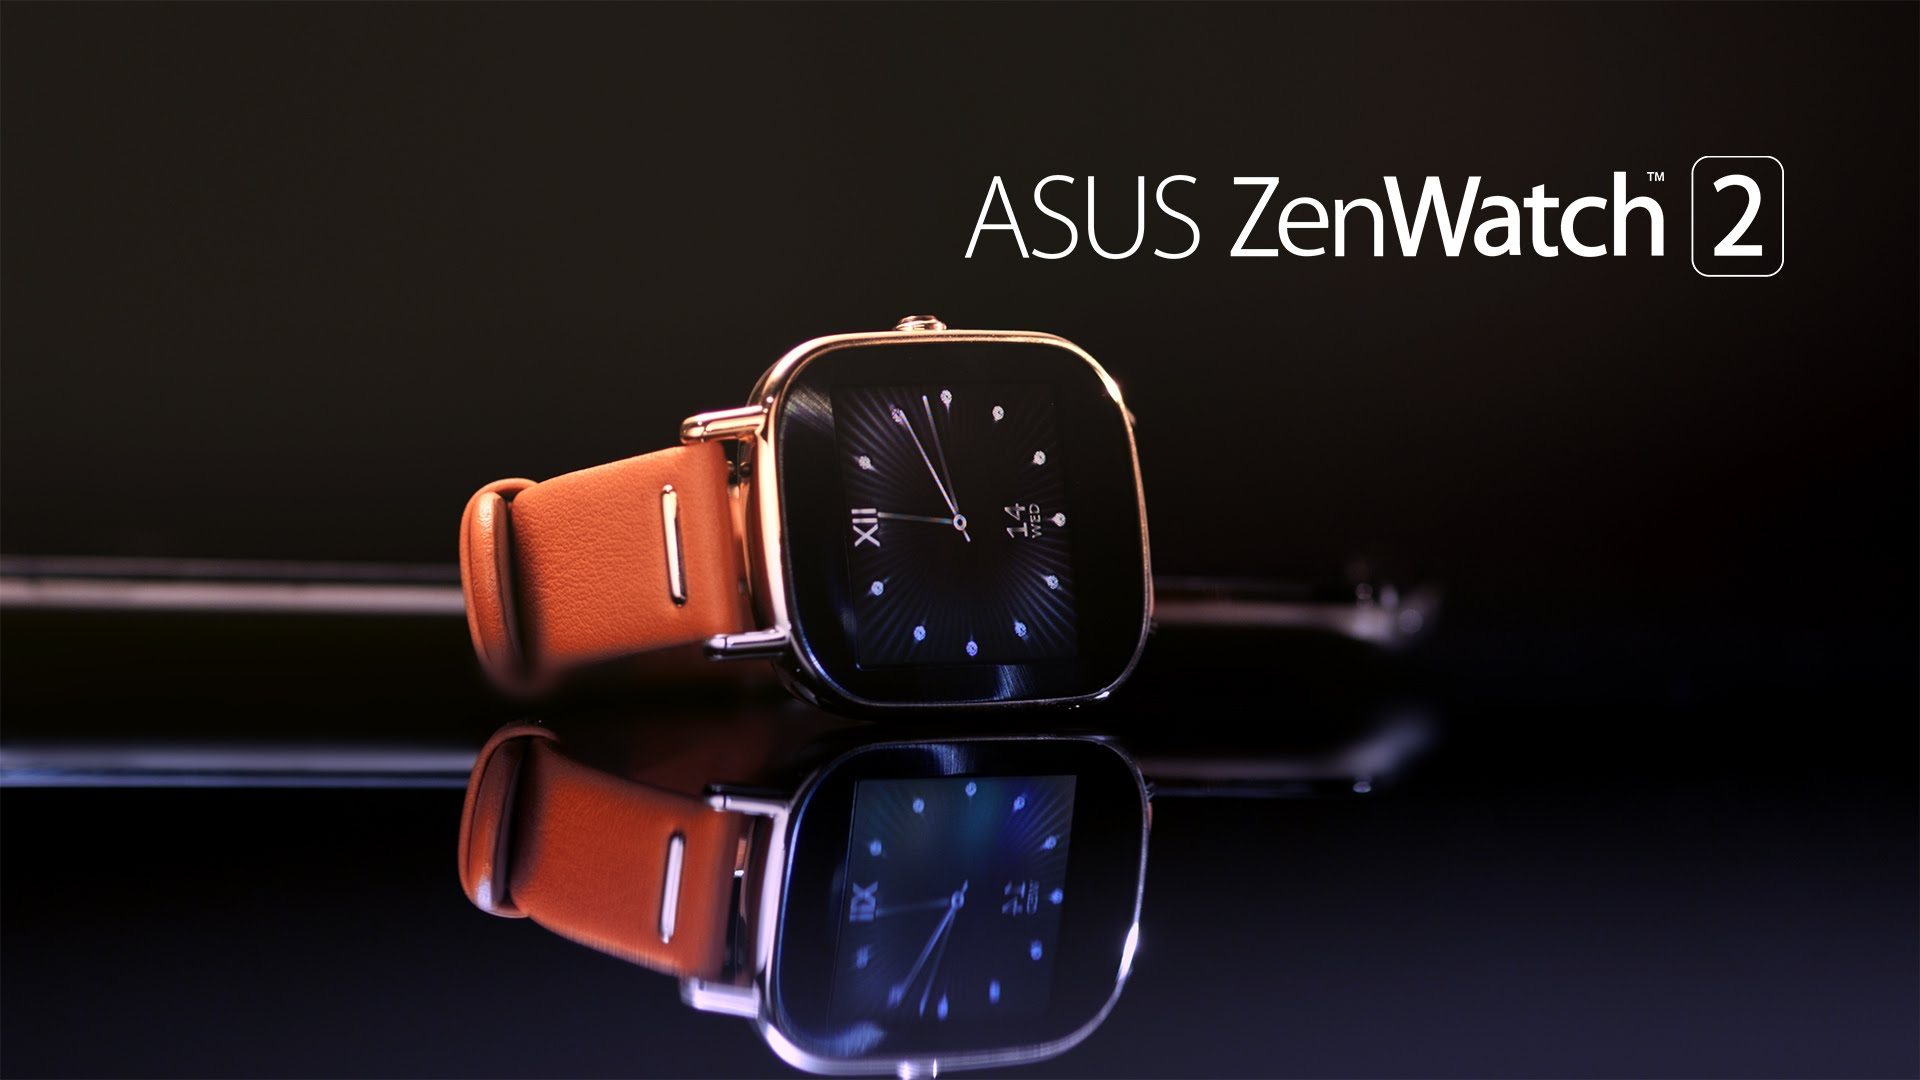 Asus Smartwatch Review: Zenwatch 2 with an Outstanding Battery Backup Time